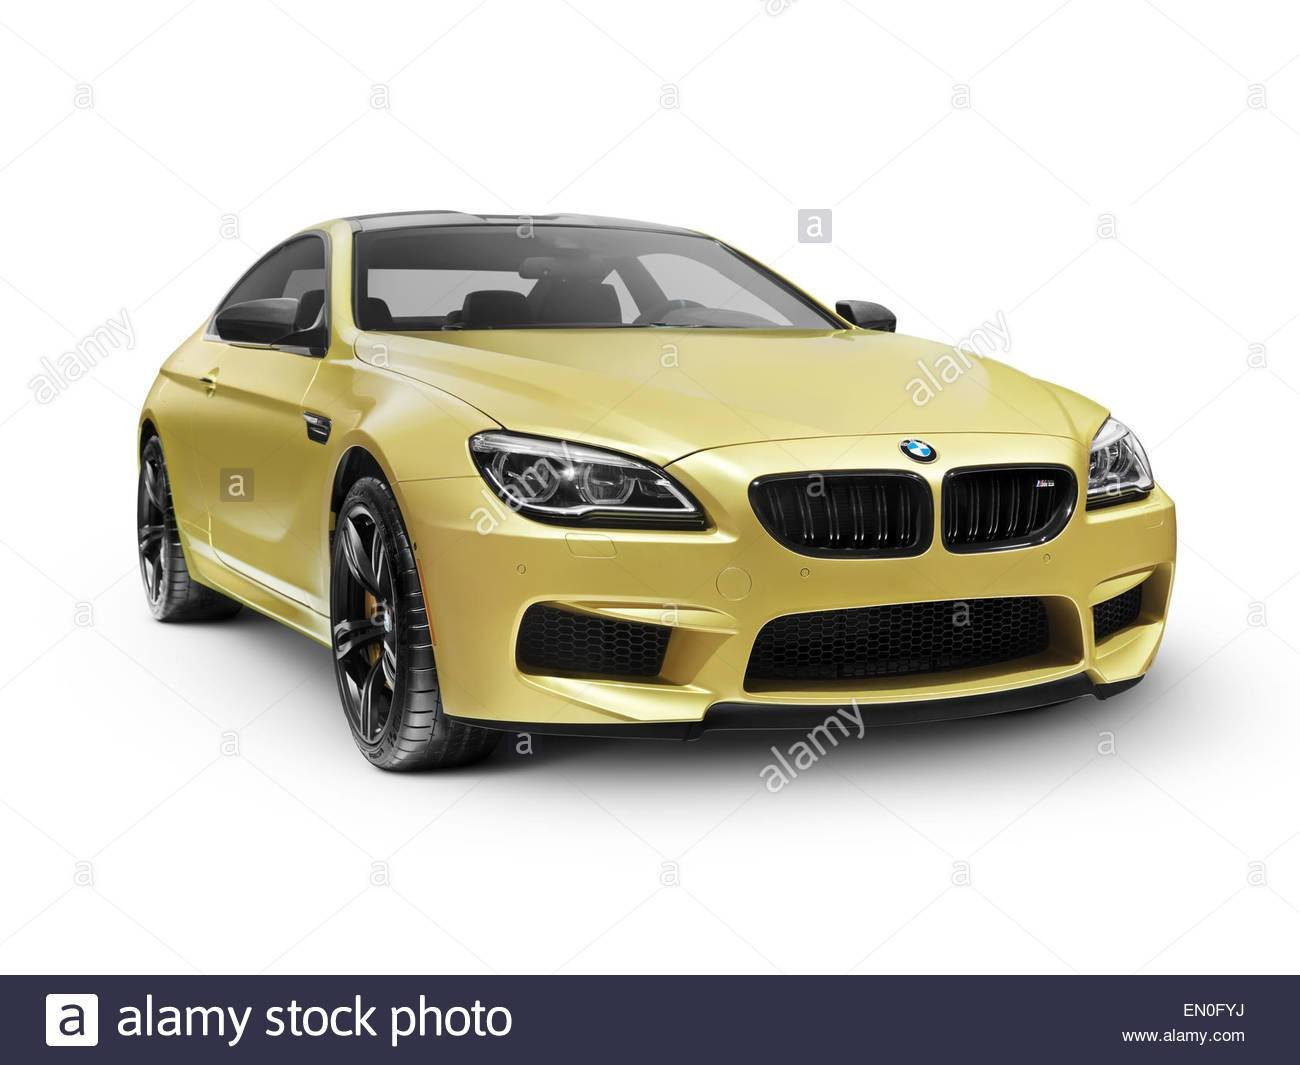 Latest Gold 2015 Bmw M6 Coupe Luxury Car Isolated On White Free Download